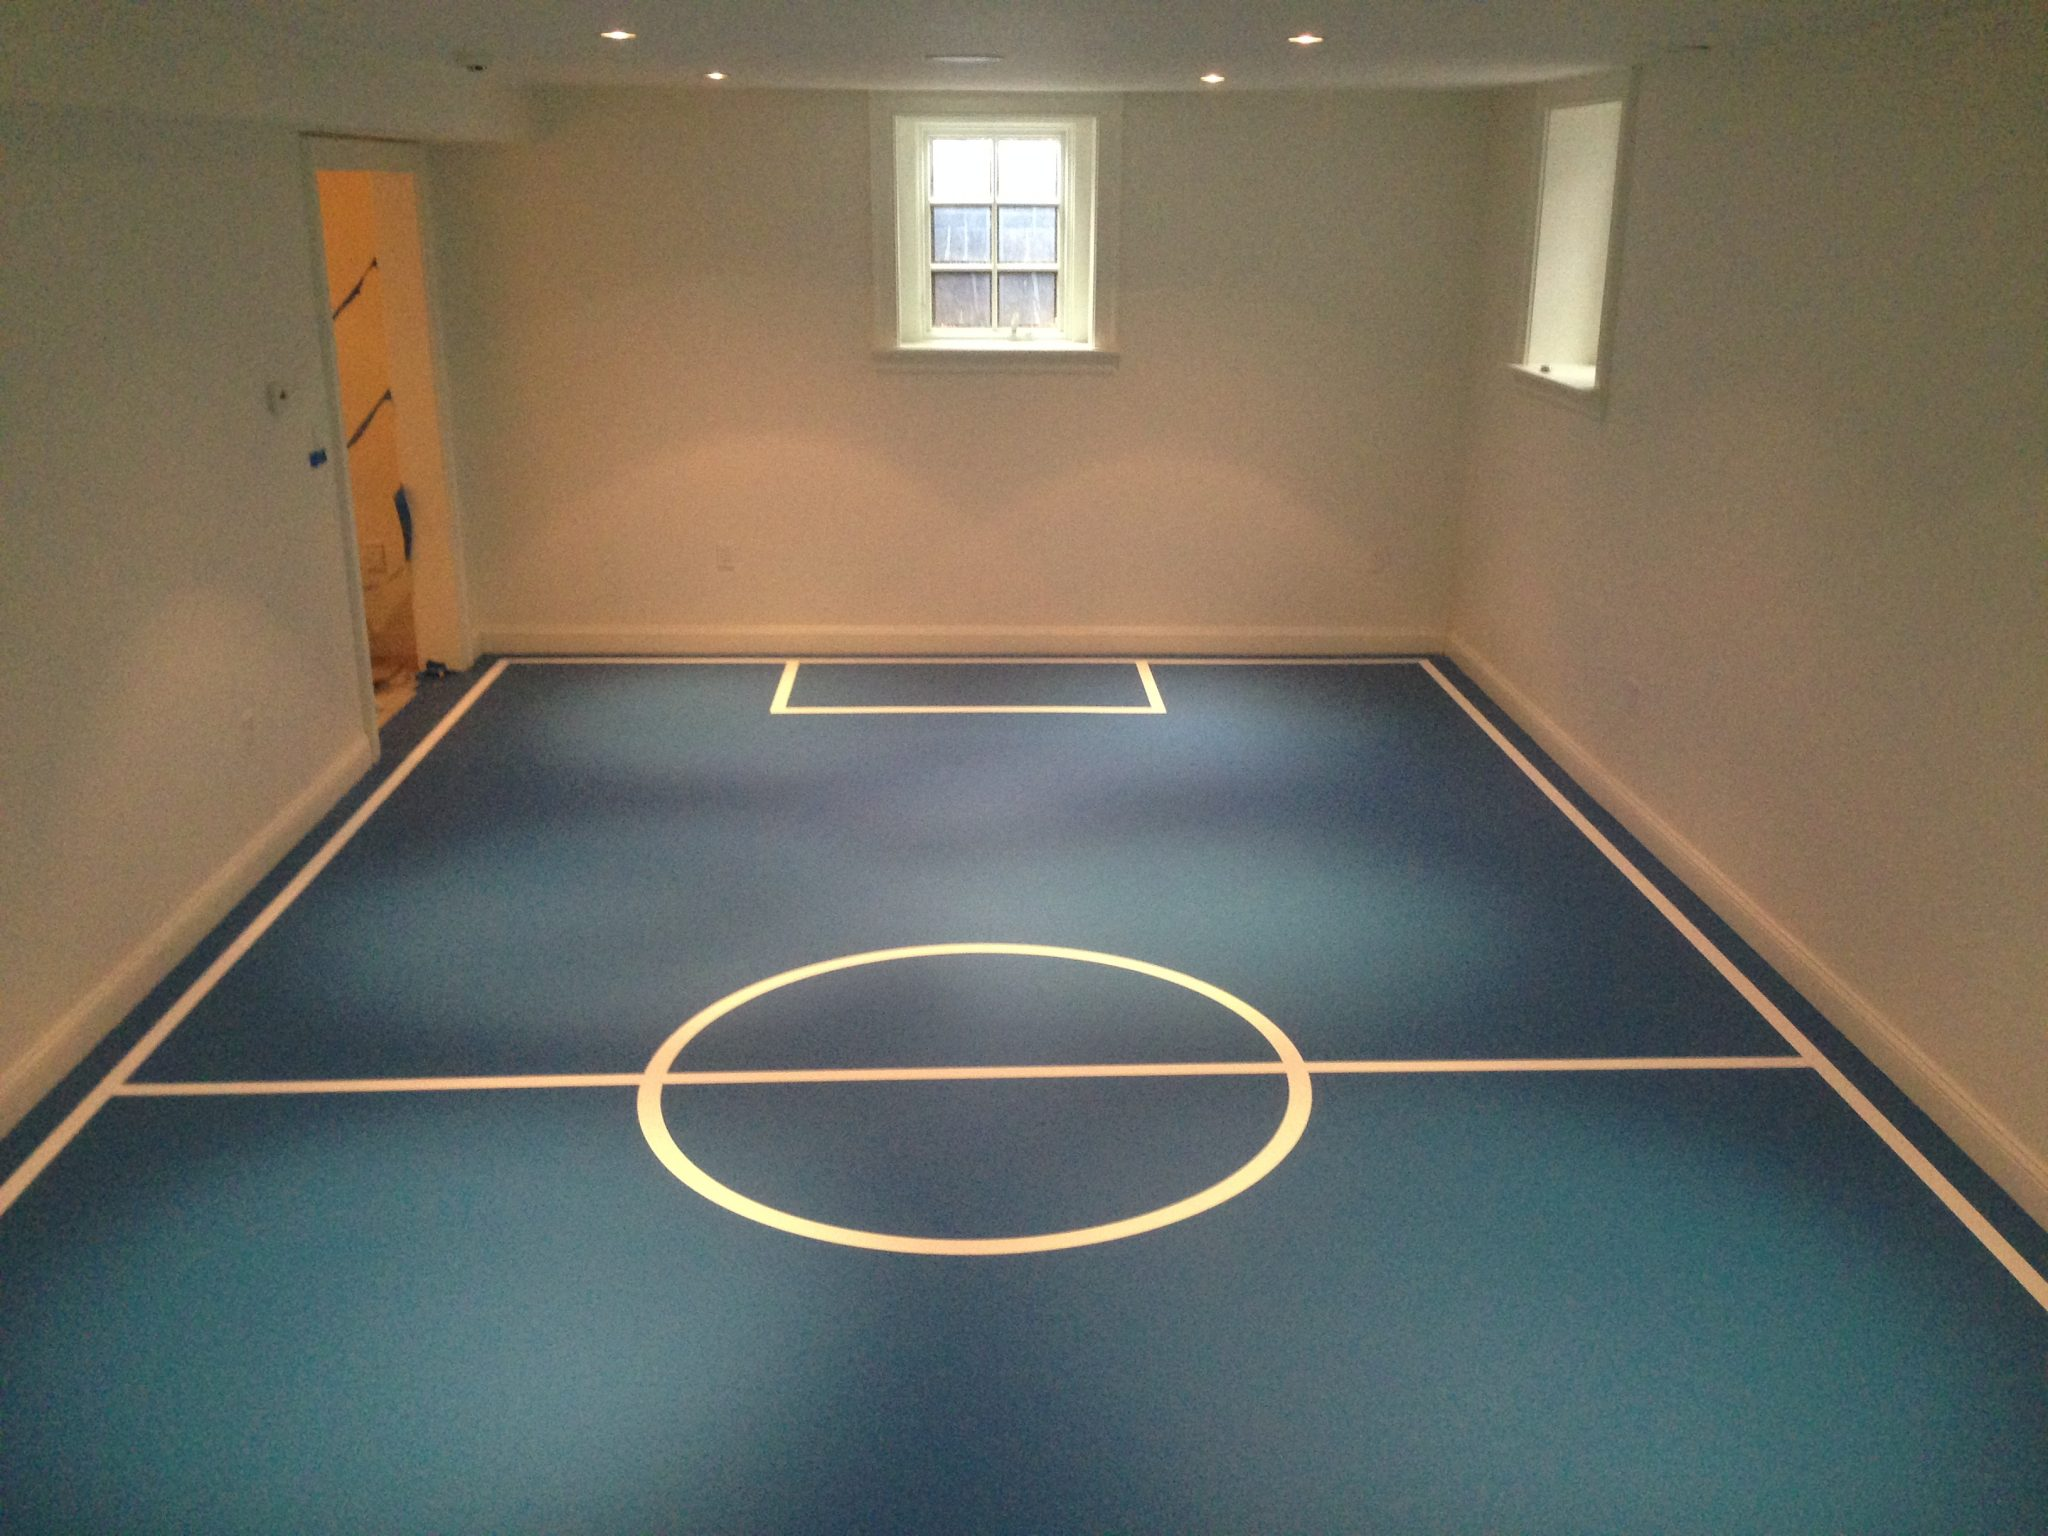 Turf home basketball court